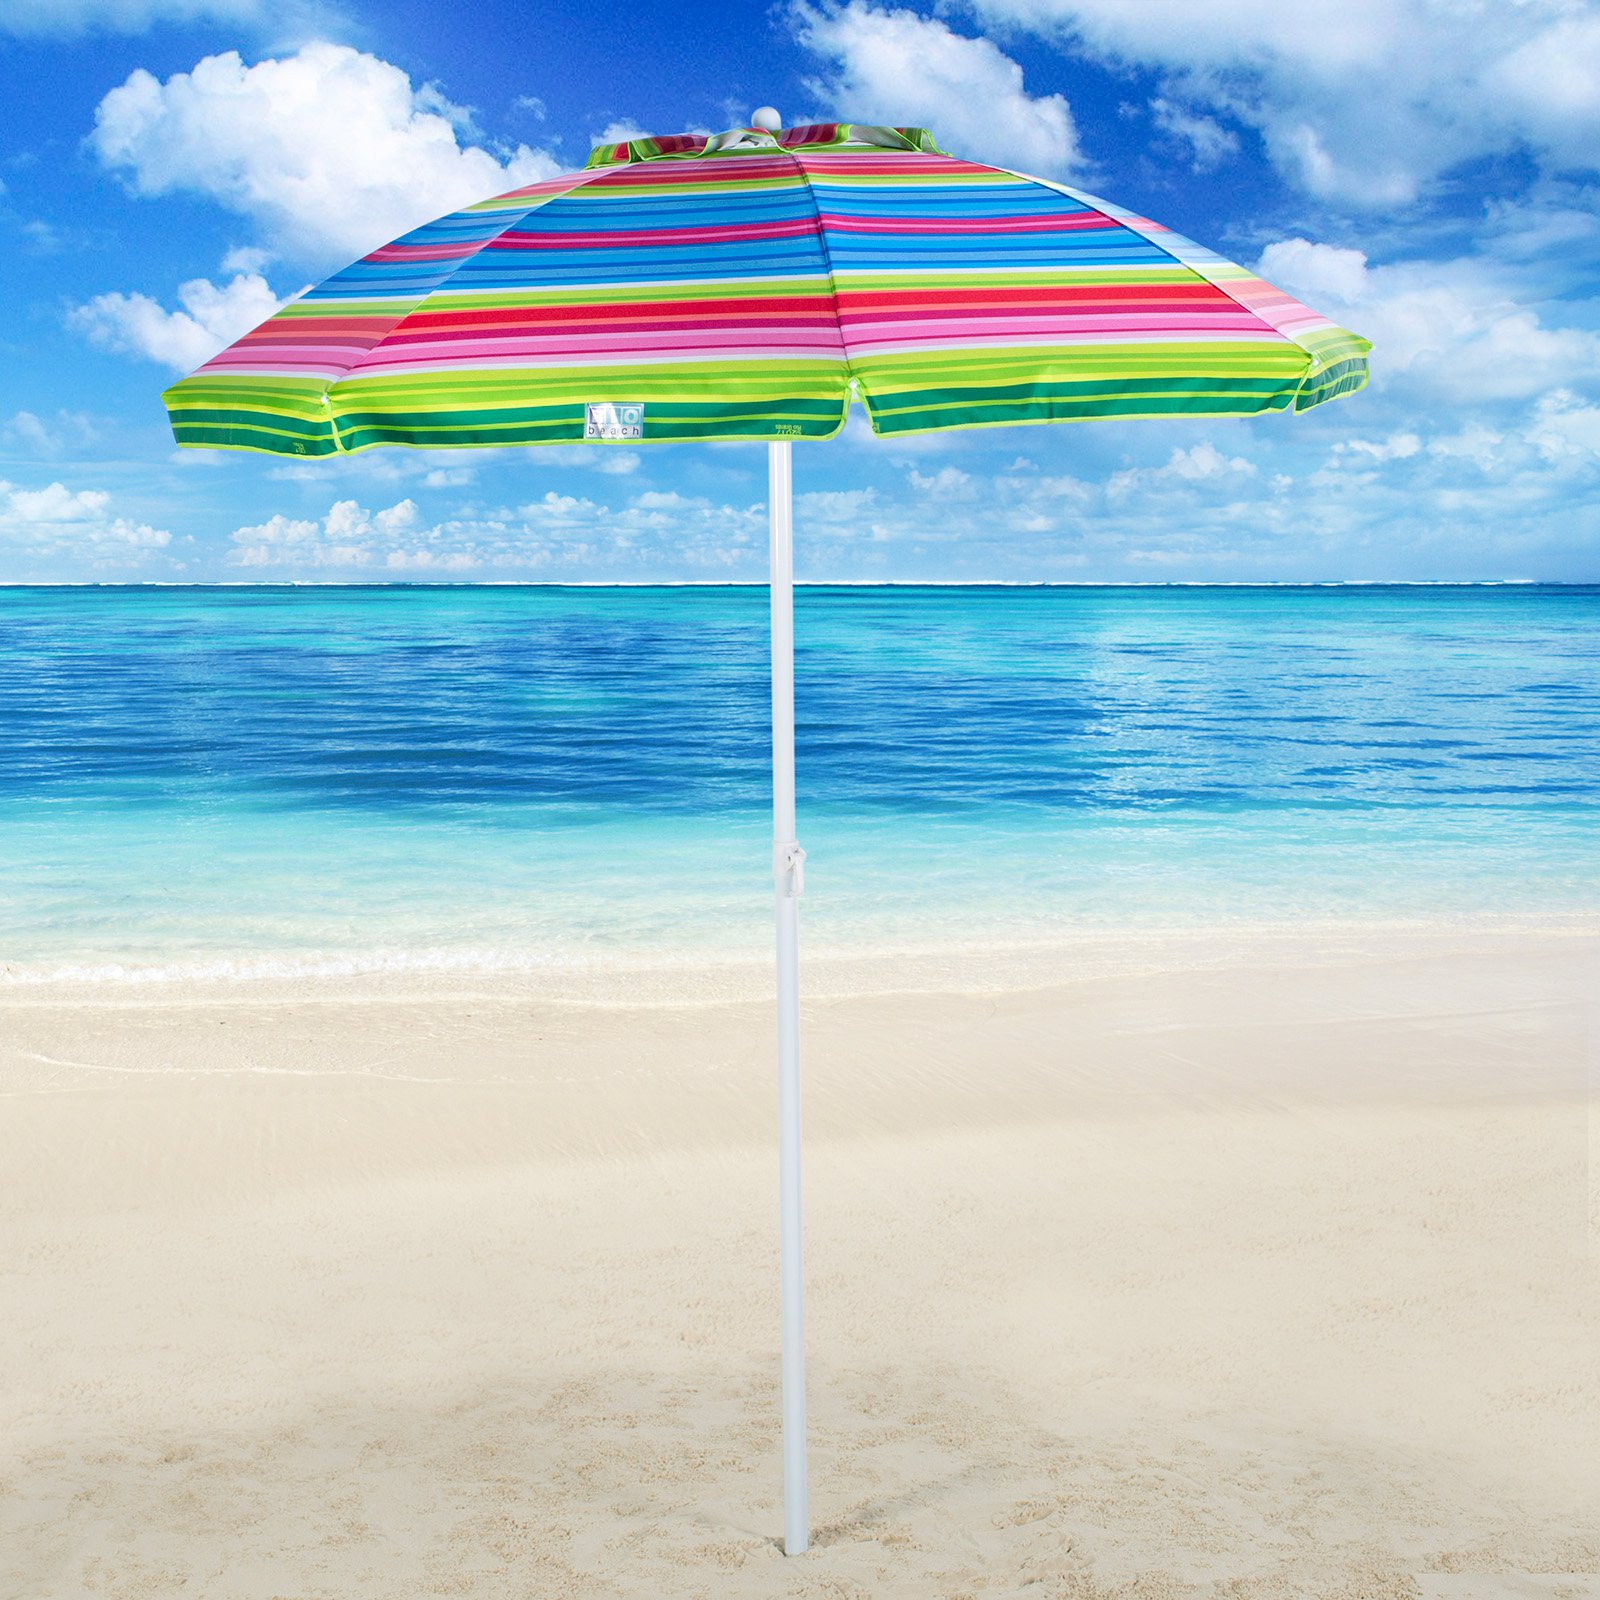 0d4be928ed77 Rio Brands 6 ft. Tilt Beach Umbrella with Carry Bag - Stripe - Walmart.com